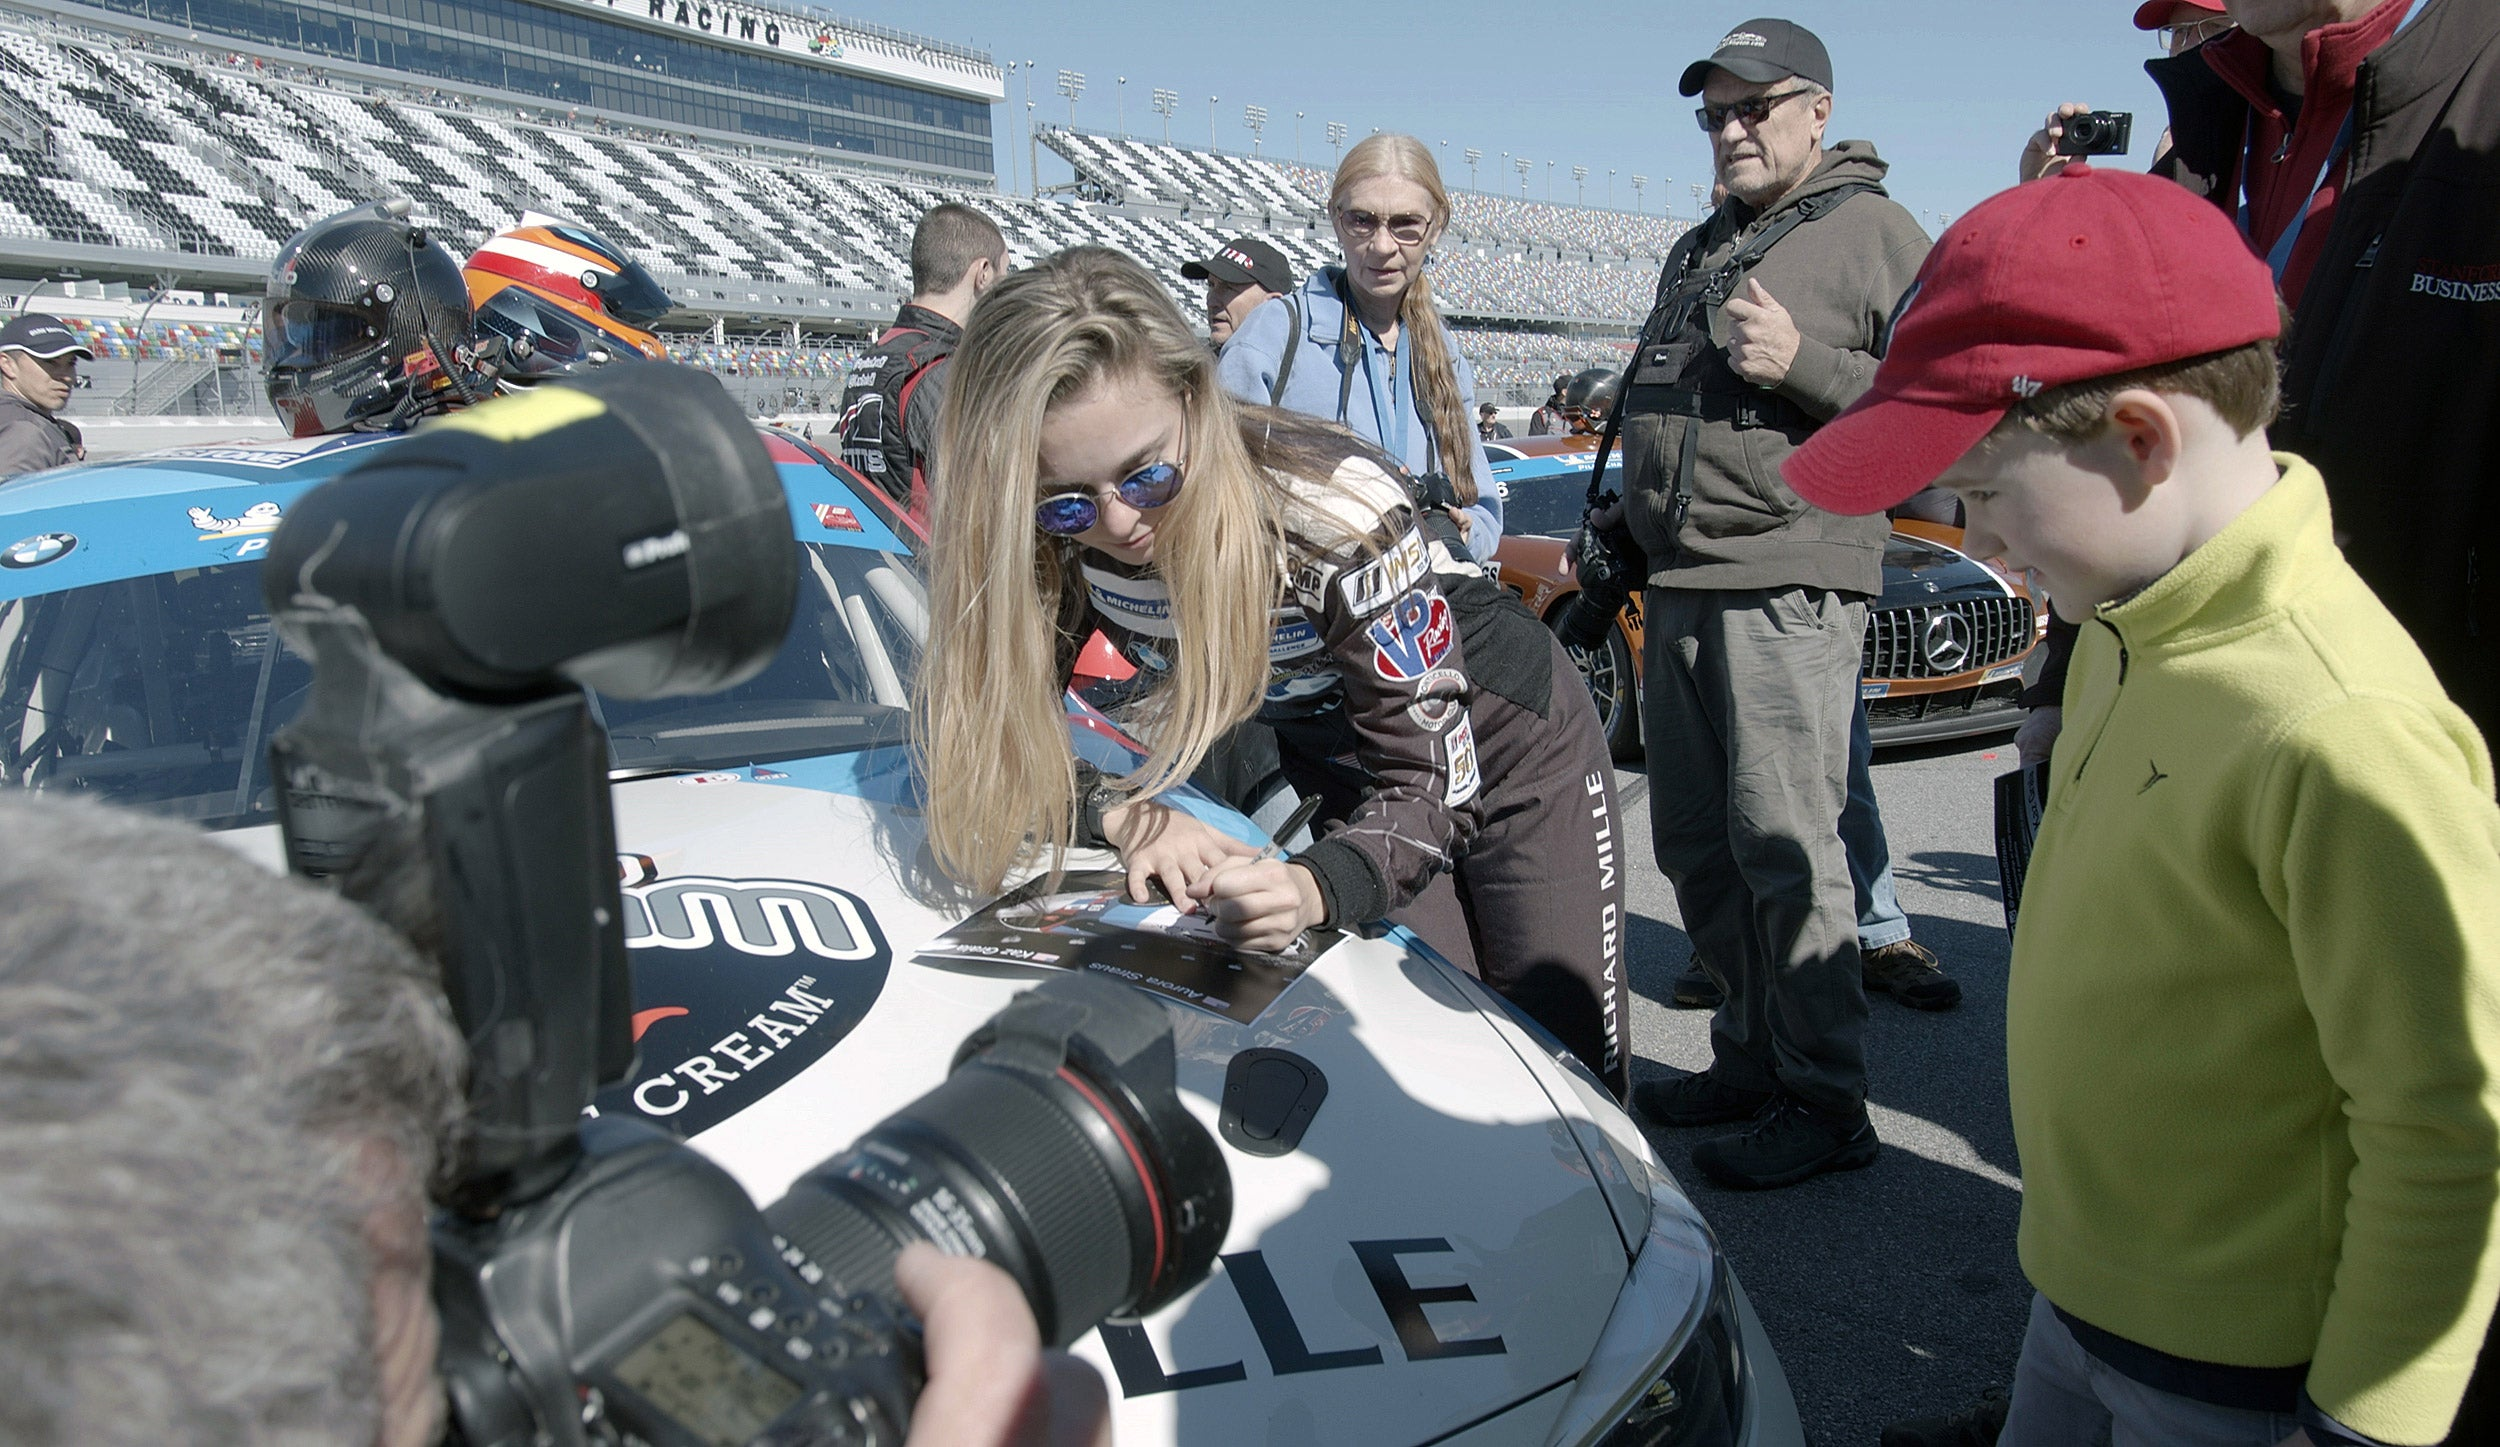 Aurora Straus signs autographs in Daytona Beach, Fla.